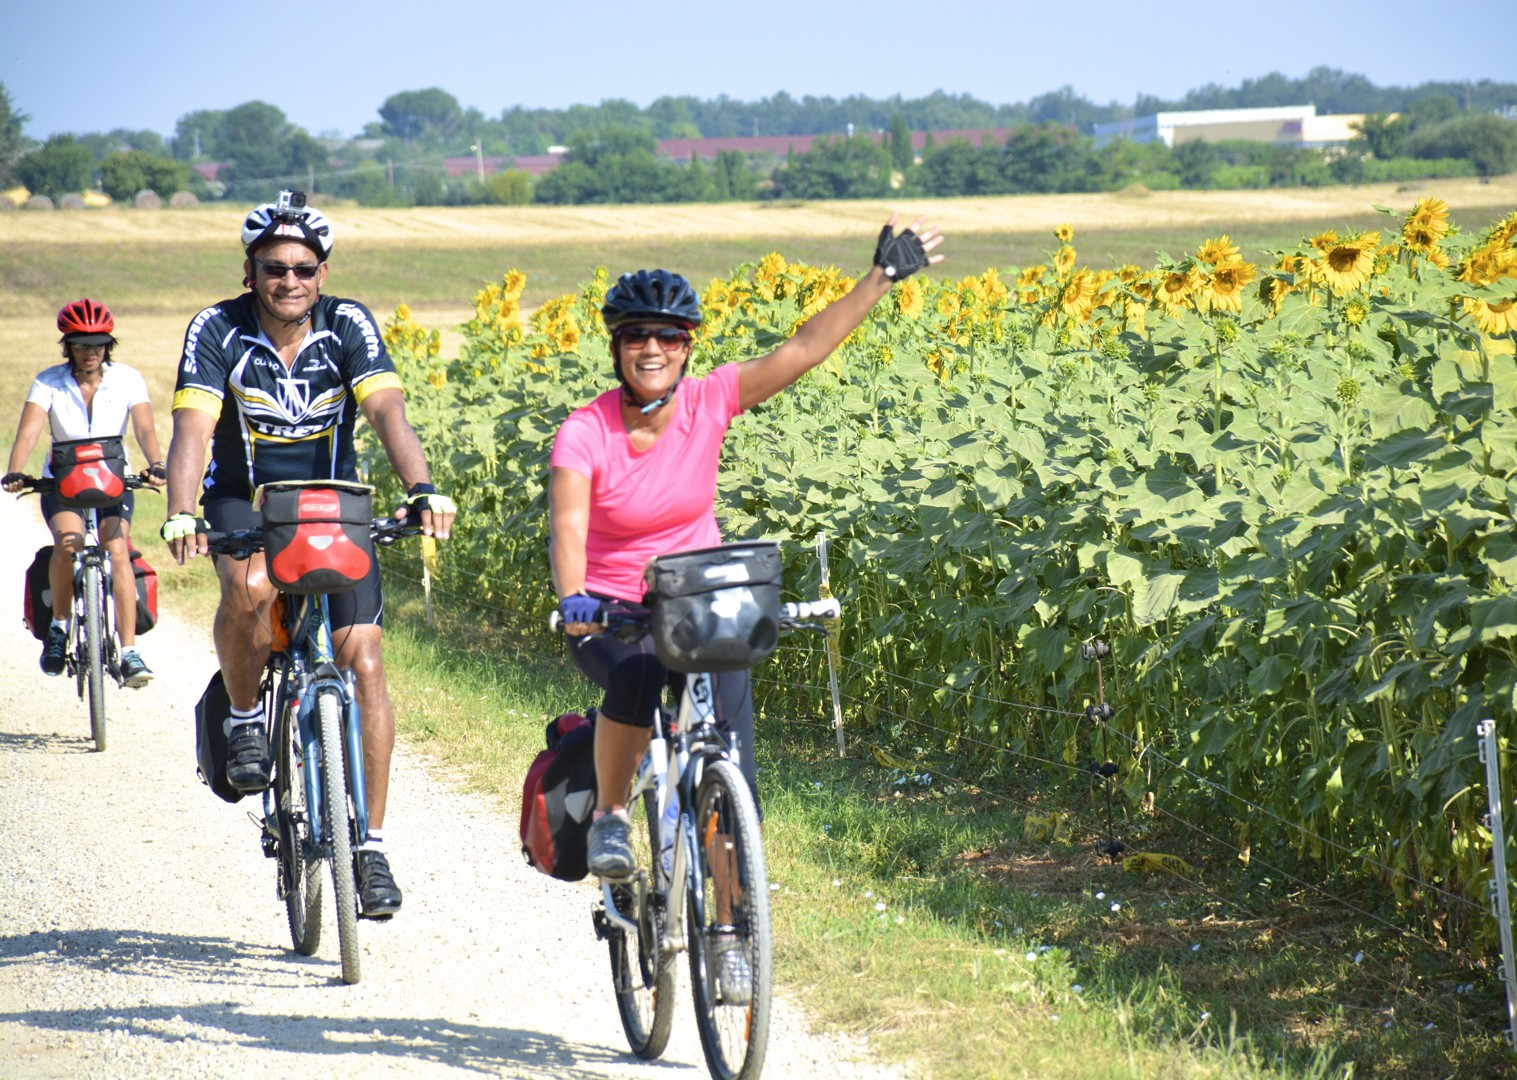 tuscnay-cycling-holiday-landscape.jpg - Italy - Classic Tuscany - Self-Guided Leisure Cycling Holiday - Italia Leisure and Family Cycling